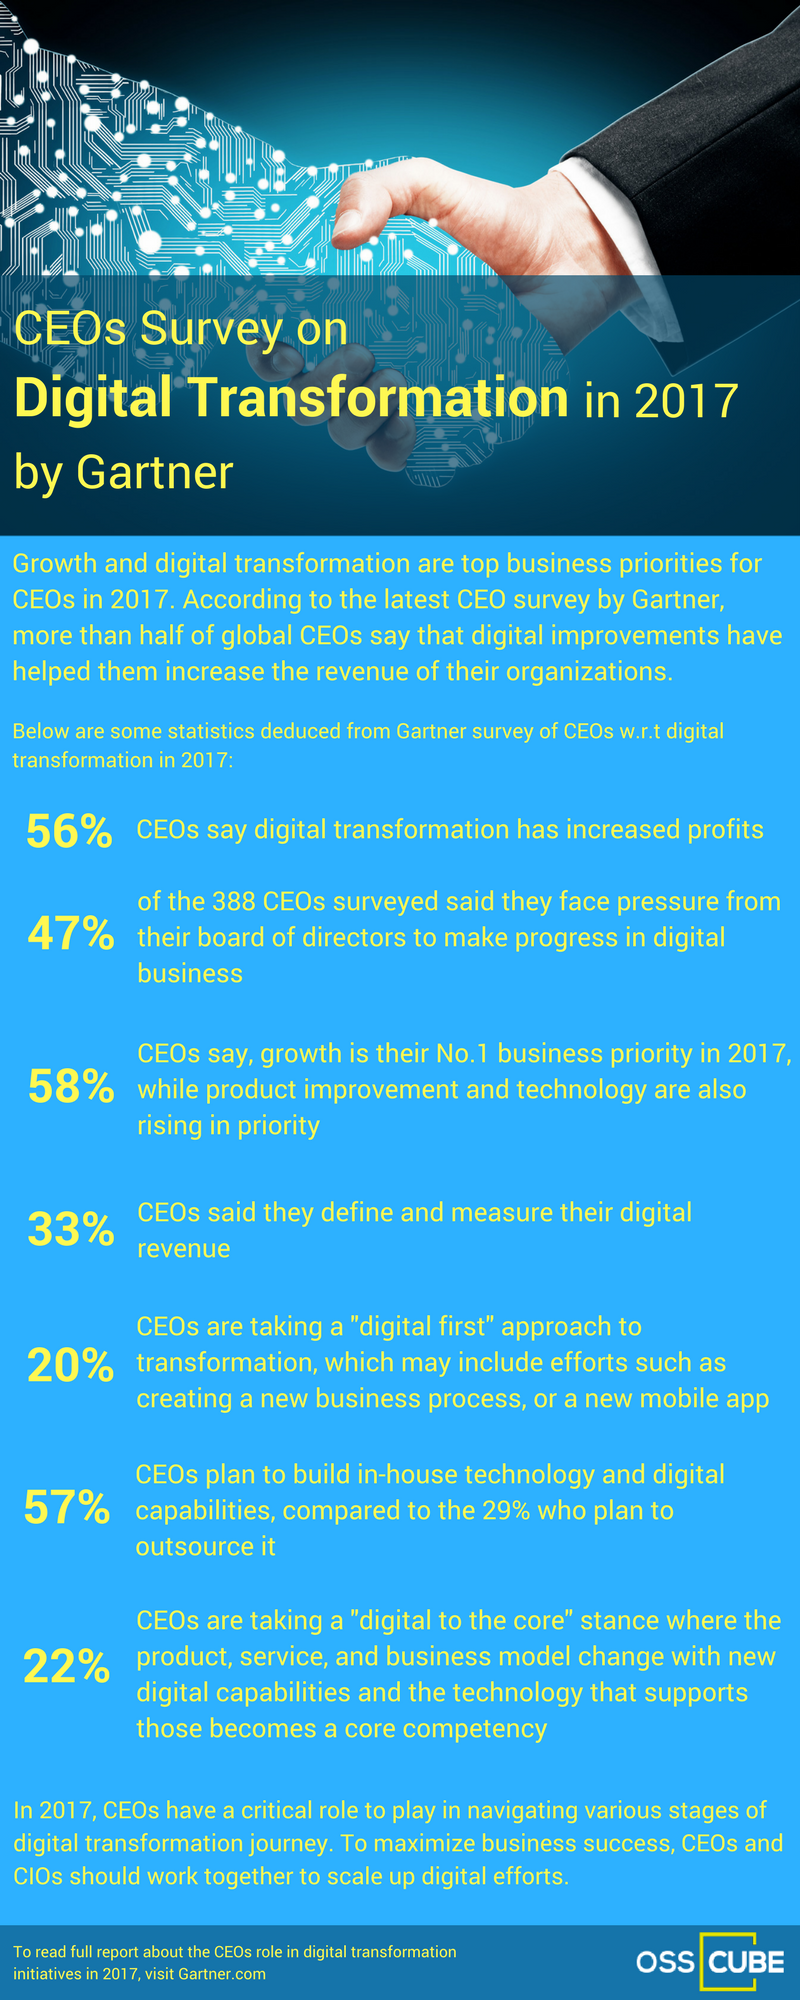 /ceos-survey-on-digital-transformation-in-2017-by-gartner-c2d6e842f86c feature image